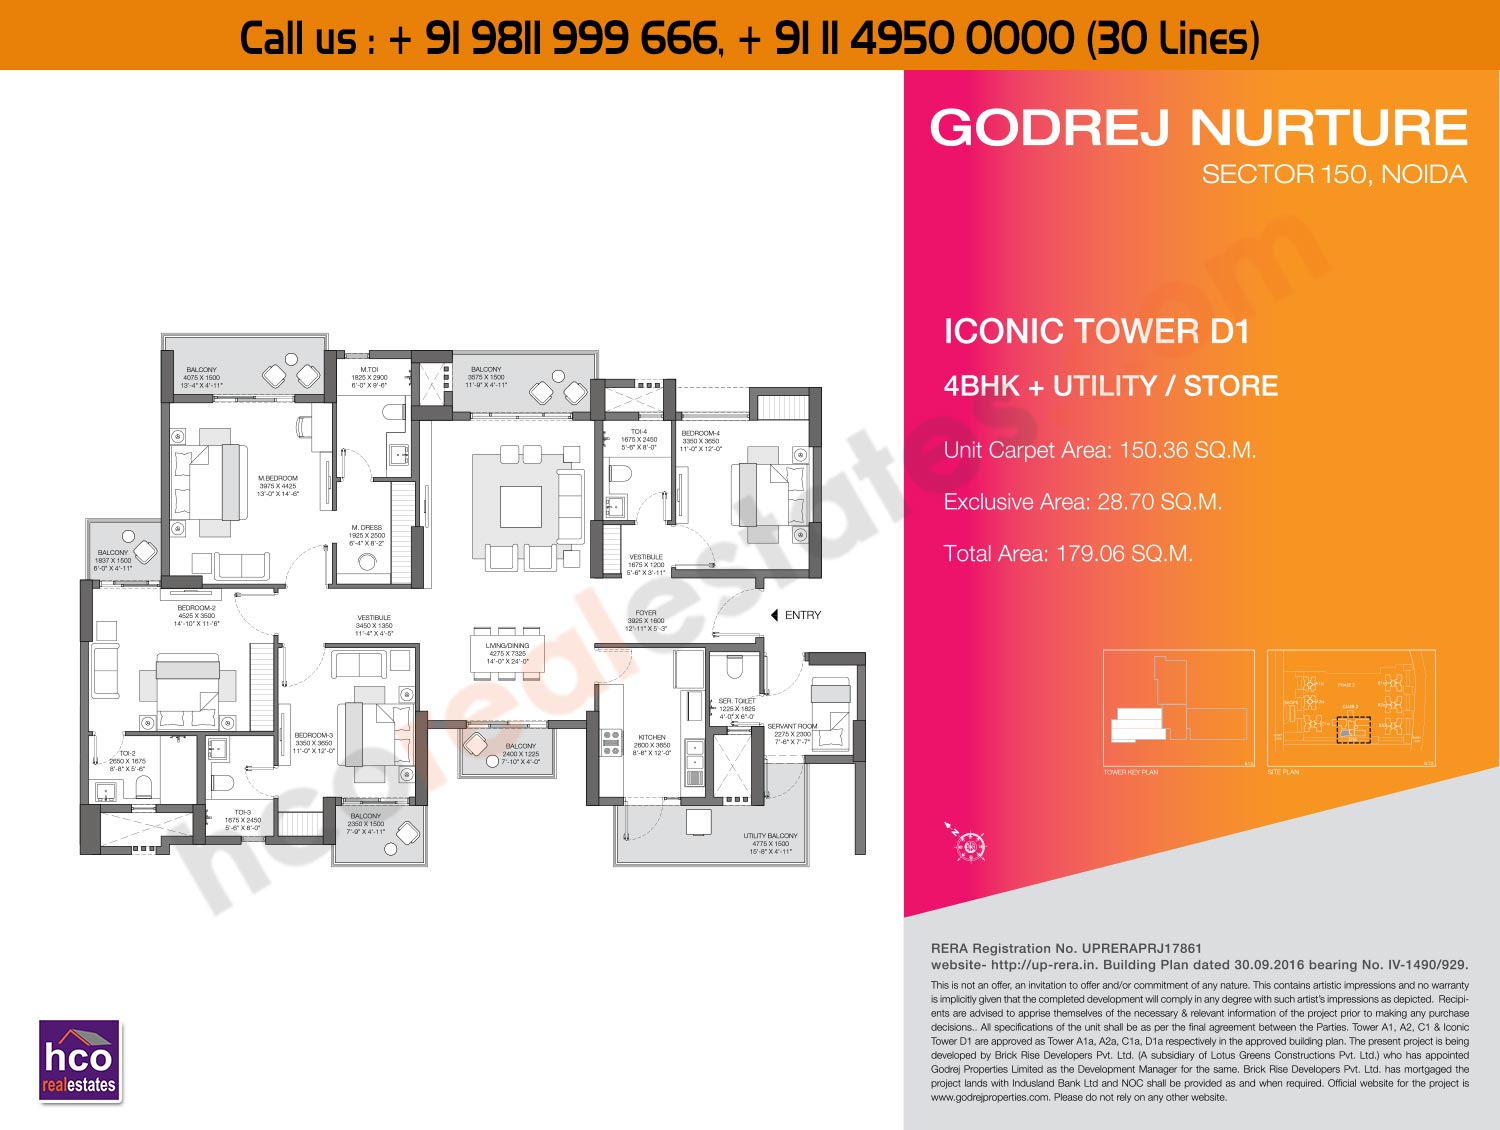 4 BHK + Utility Store Iconic, Tower - D1